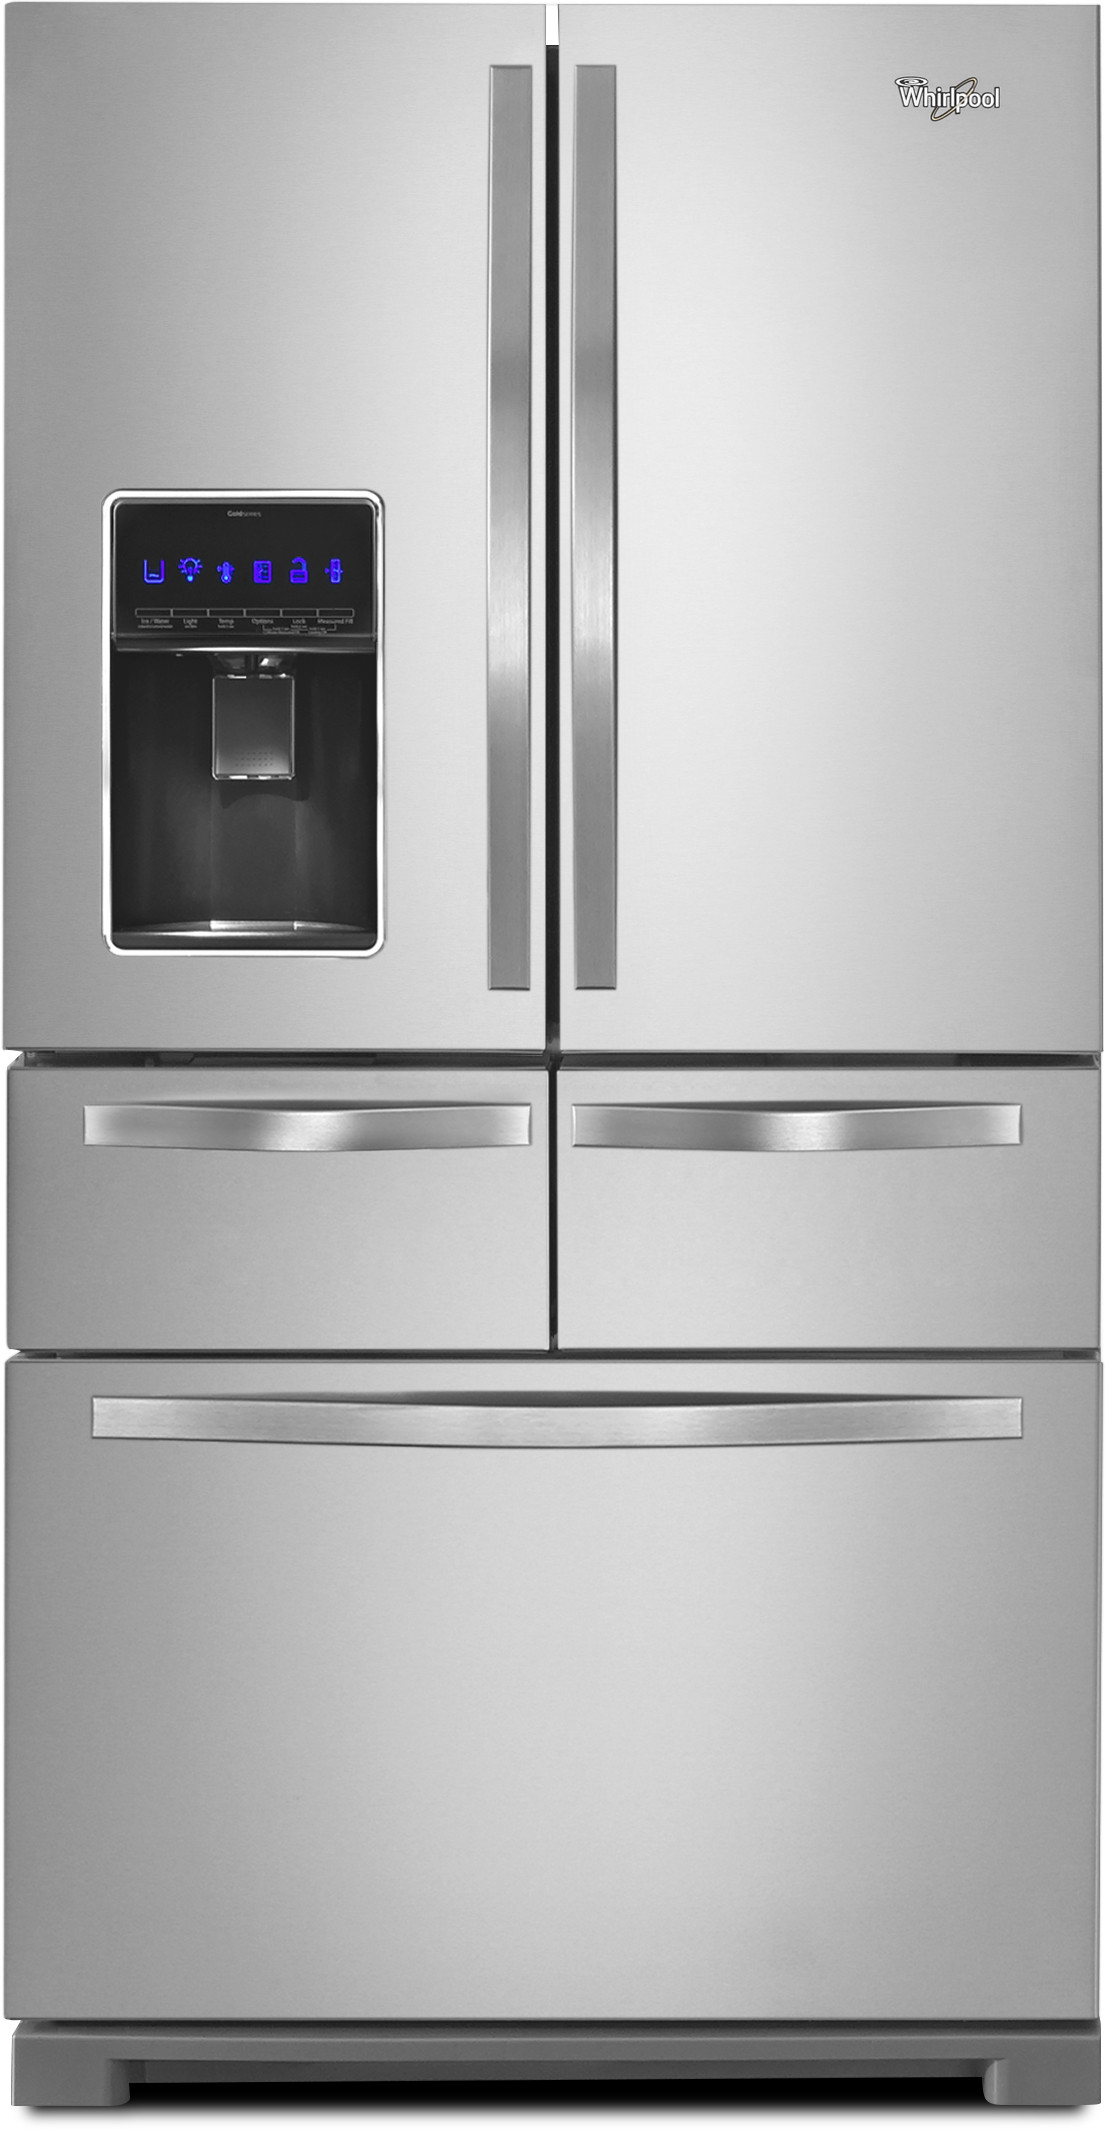 Whirlpool Wrv986fdem 36 Inch 5 Door French Door Refrigerator With 25 8 Cu Ft Capacity 5 Microedge Glass Shelves Gallon Door Storage External Temperature Controlled Drawer Storeright System Water Filter Measured Fill Dual Ice Makers